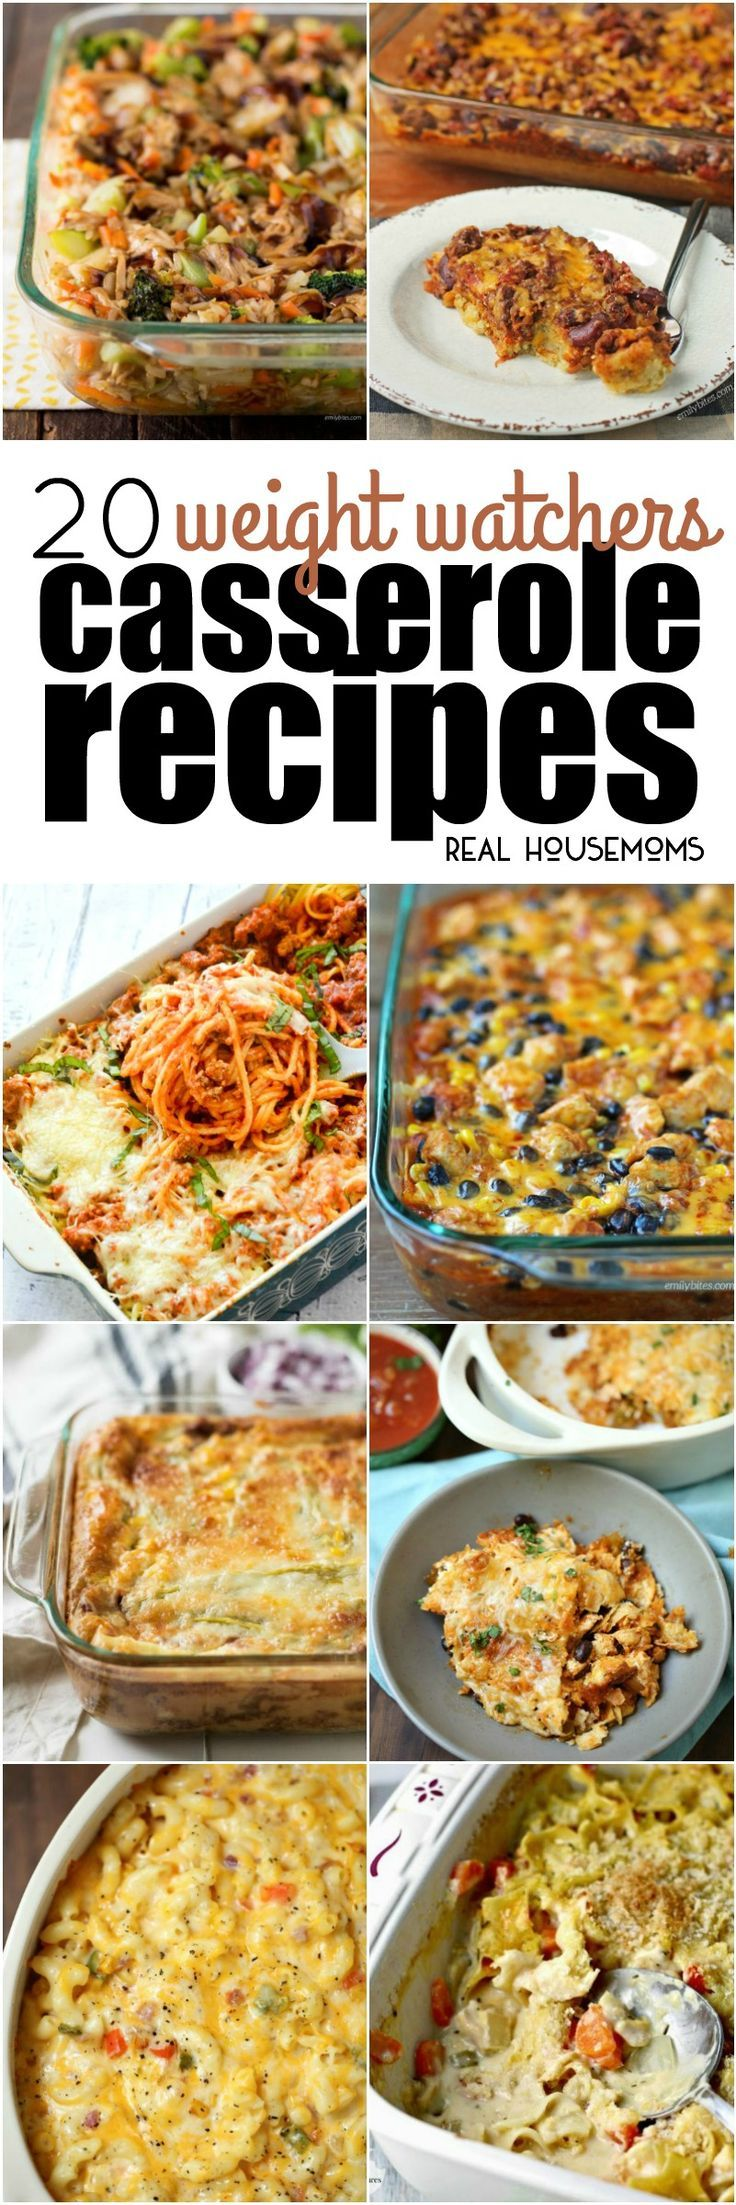 20 Weight Watchers Casserole Recipes. These 20 Weight Watchers Casserole Recipes will help you eat better while still enjoying your favorite easy casserole recipes!